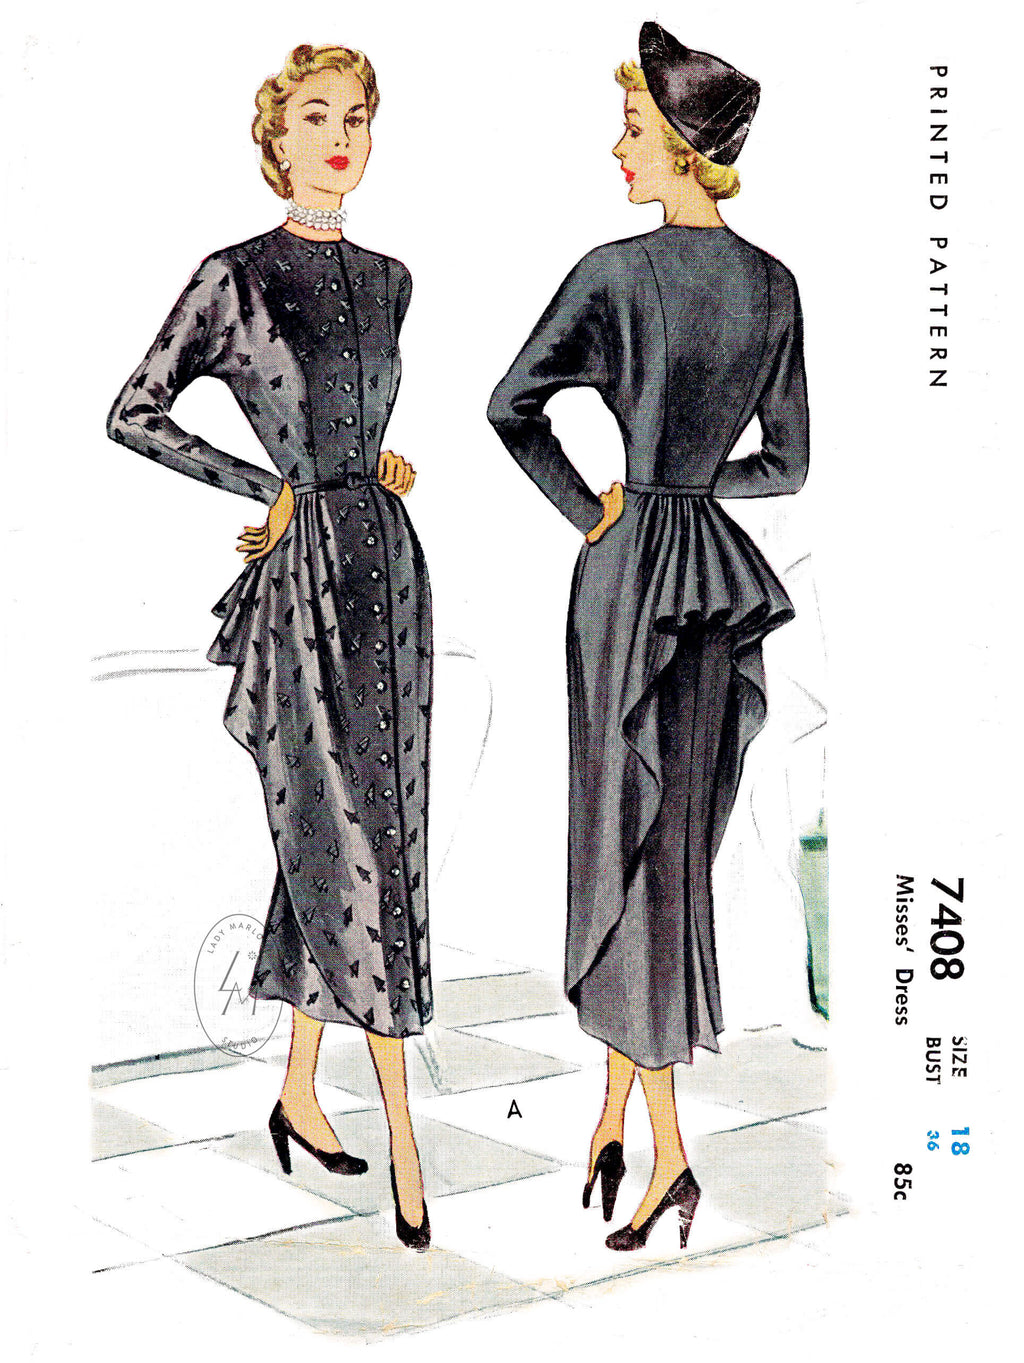 McCall 7408 1940s 1948 bustle skirt vintage dress sewing pattern reproduction